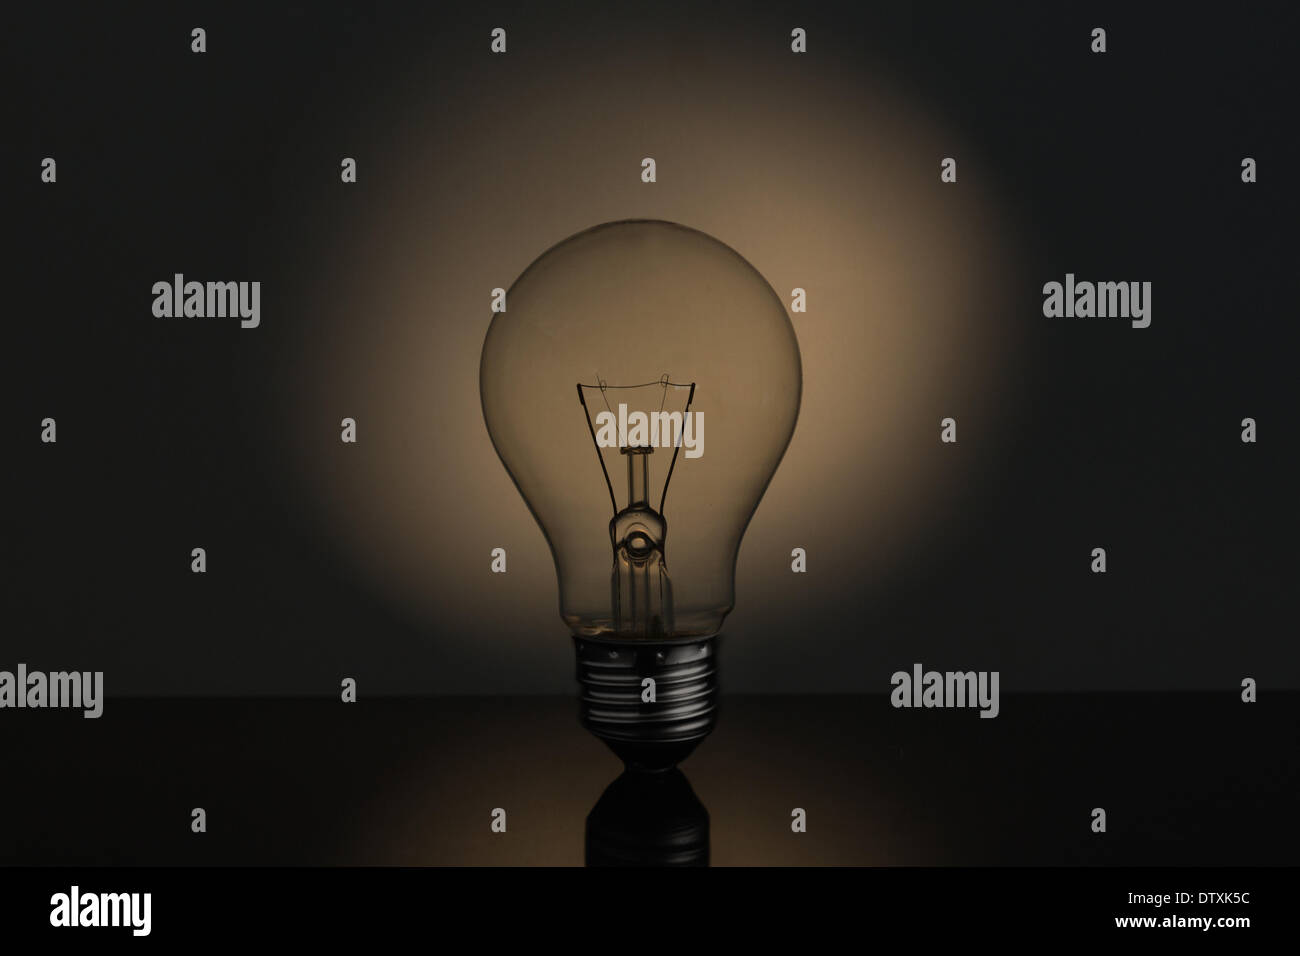 Big light bulb standing in sepia tones - Stock Image